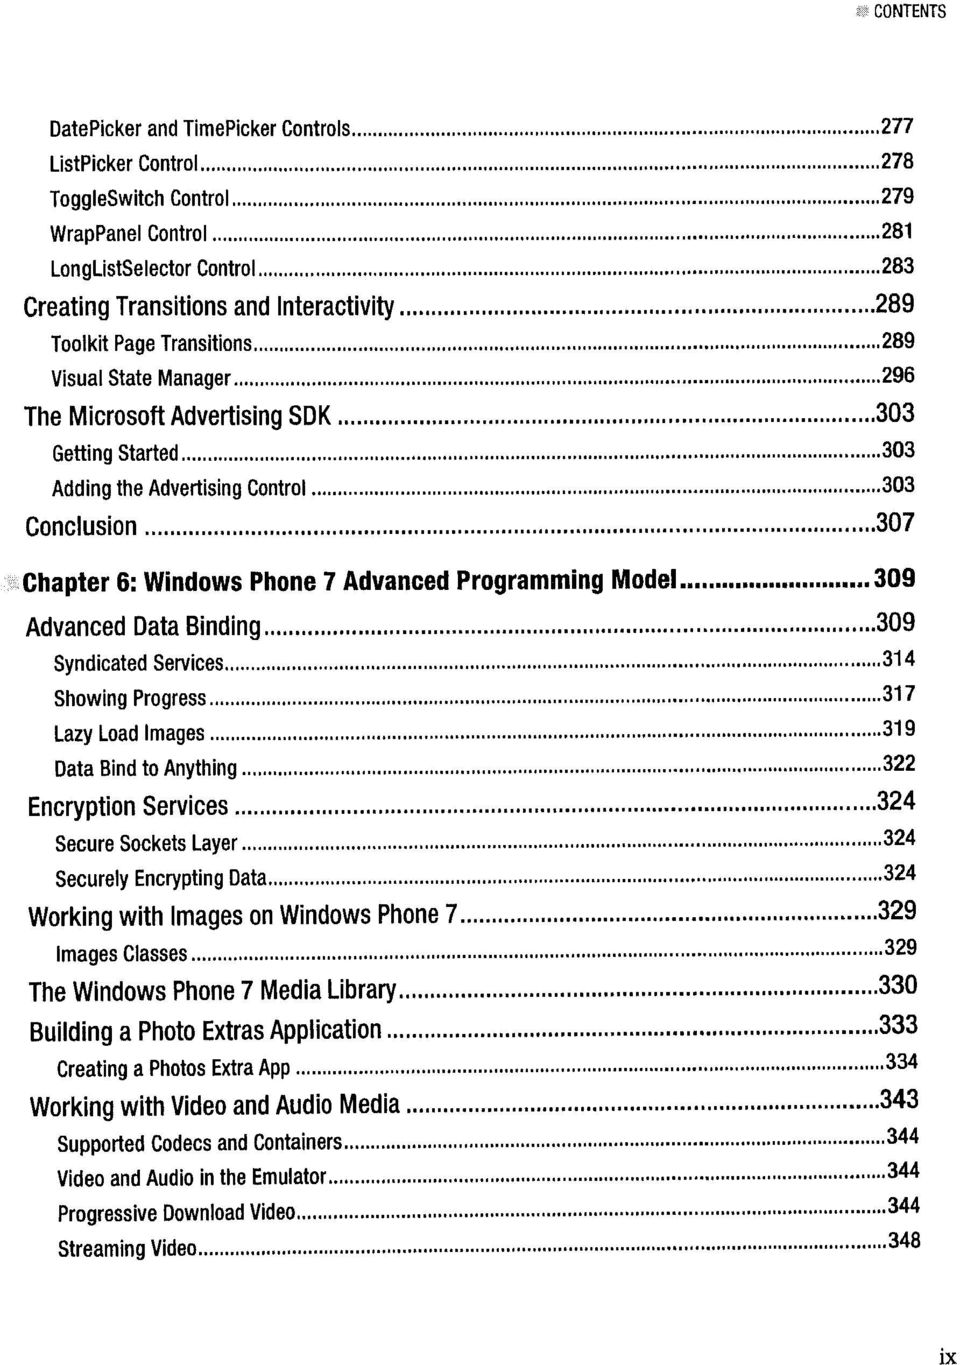 Model 309 Advanced Data Binding 309 Syndicated Services 314 Showing Progress 317 Lazy Load Images Data Bind to Anything Encryption Services 324 Secure Sockets Layer 324 Securely Encrypting Data 324